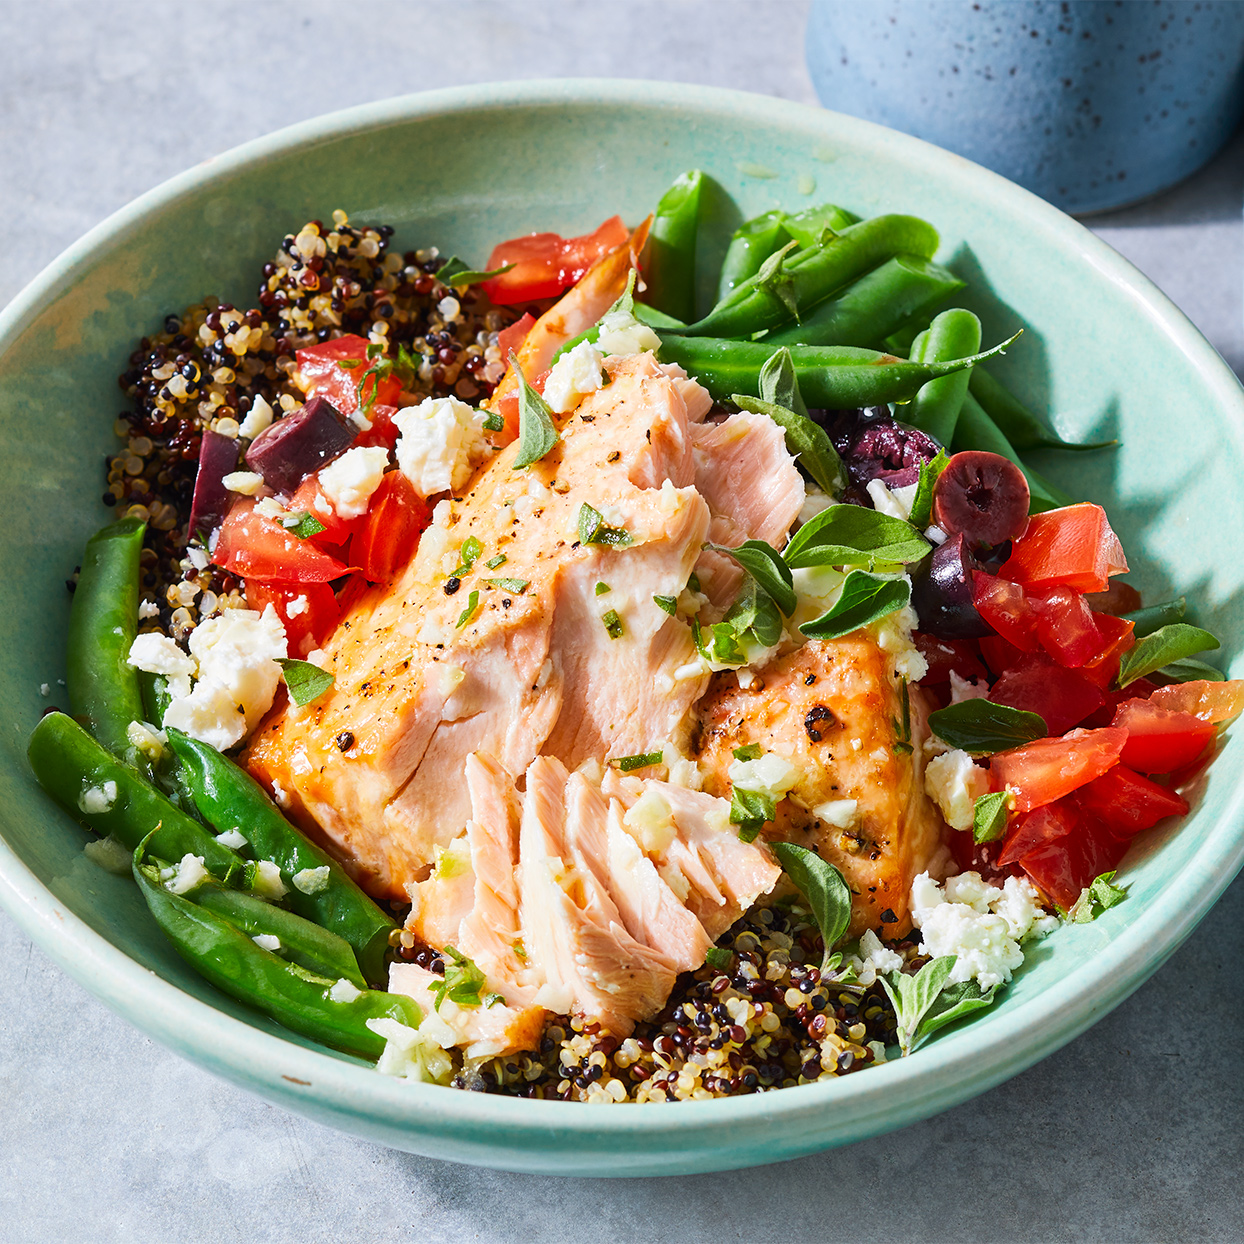 This salmon quinoa bowl with green beans is a meal that keeps on giving. Pack up any leftovers for a next-day lunch, or make the entire recipe ahead and pack it into individual serving containers for ready-to-go meals. Source: Diabetic Living Magazine, Summer 2020